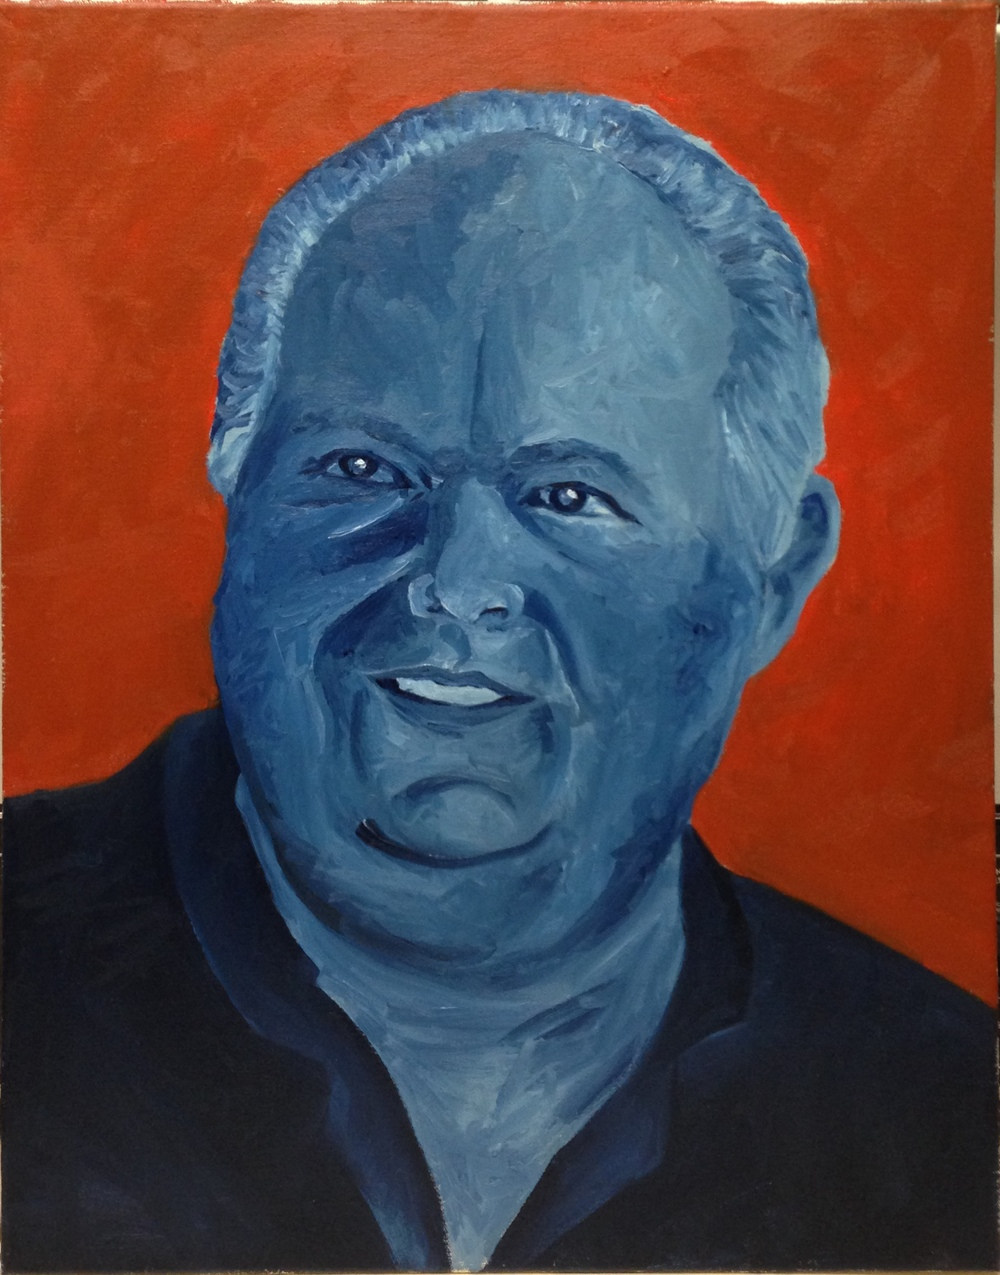 2013_12_painting_rushlimbaugh.JPG